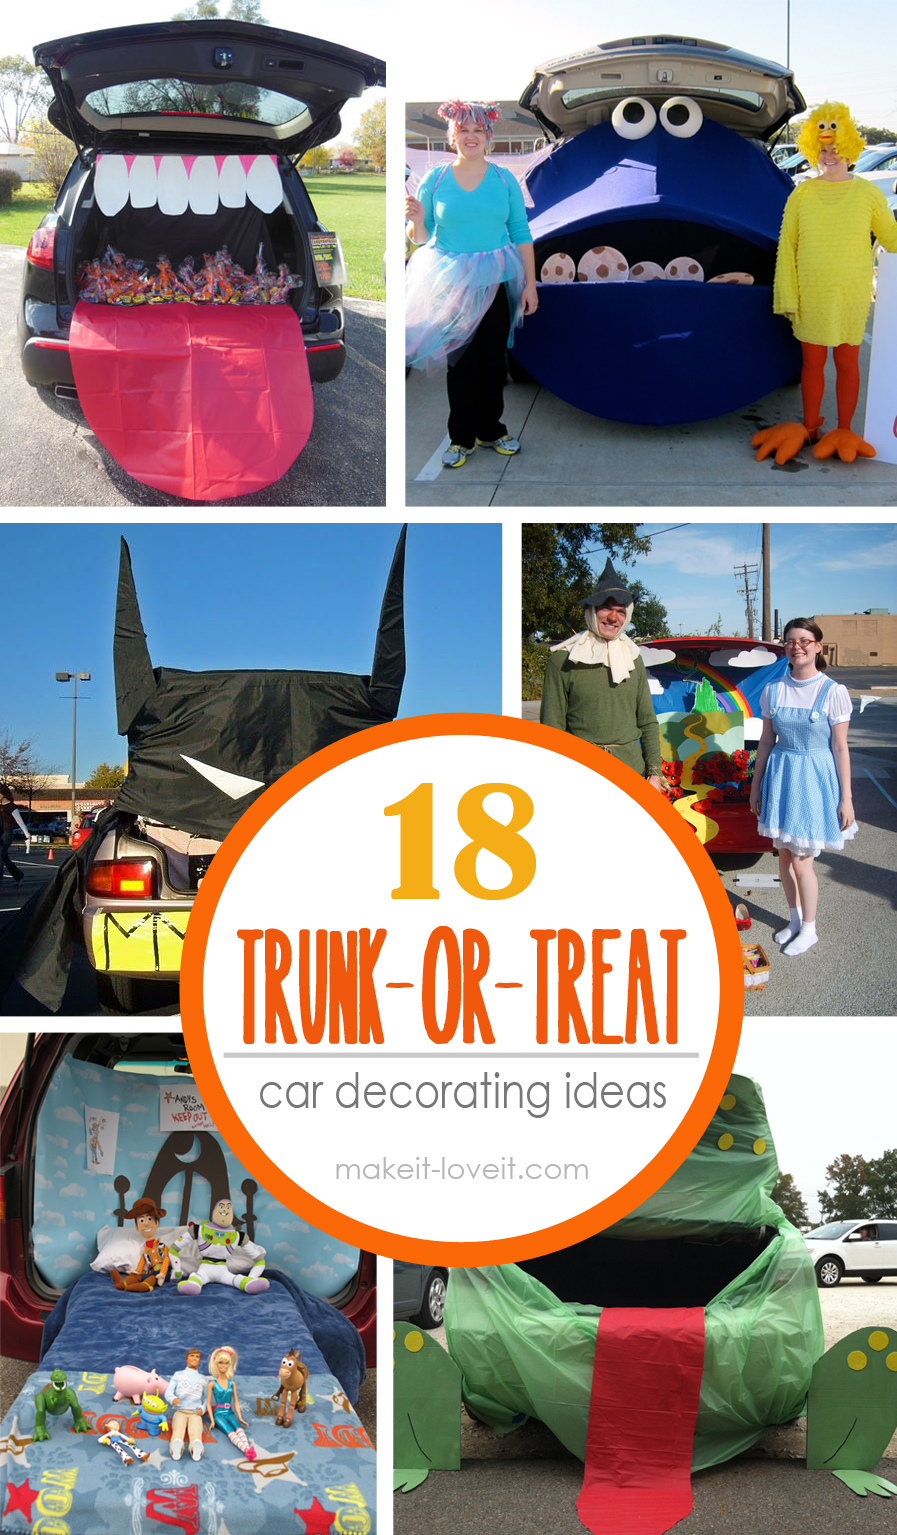 18 TRUNK-or-Treat Car Decoration Ideas! --- Make It and & 18 Trunk-or-Treat Car Decorating Ideas | Make It and Love It